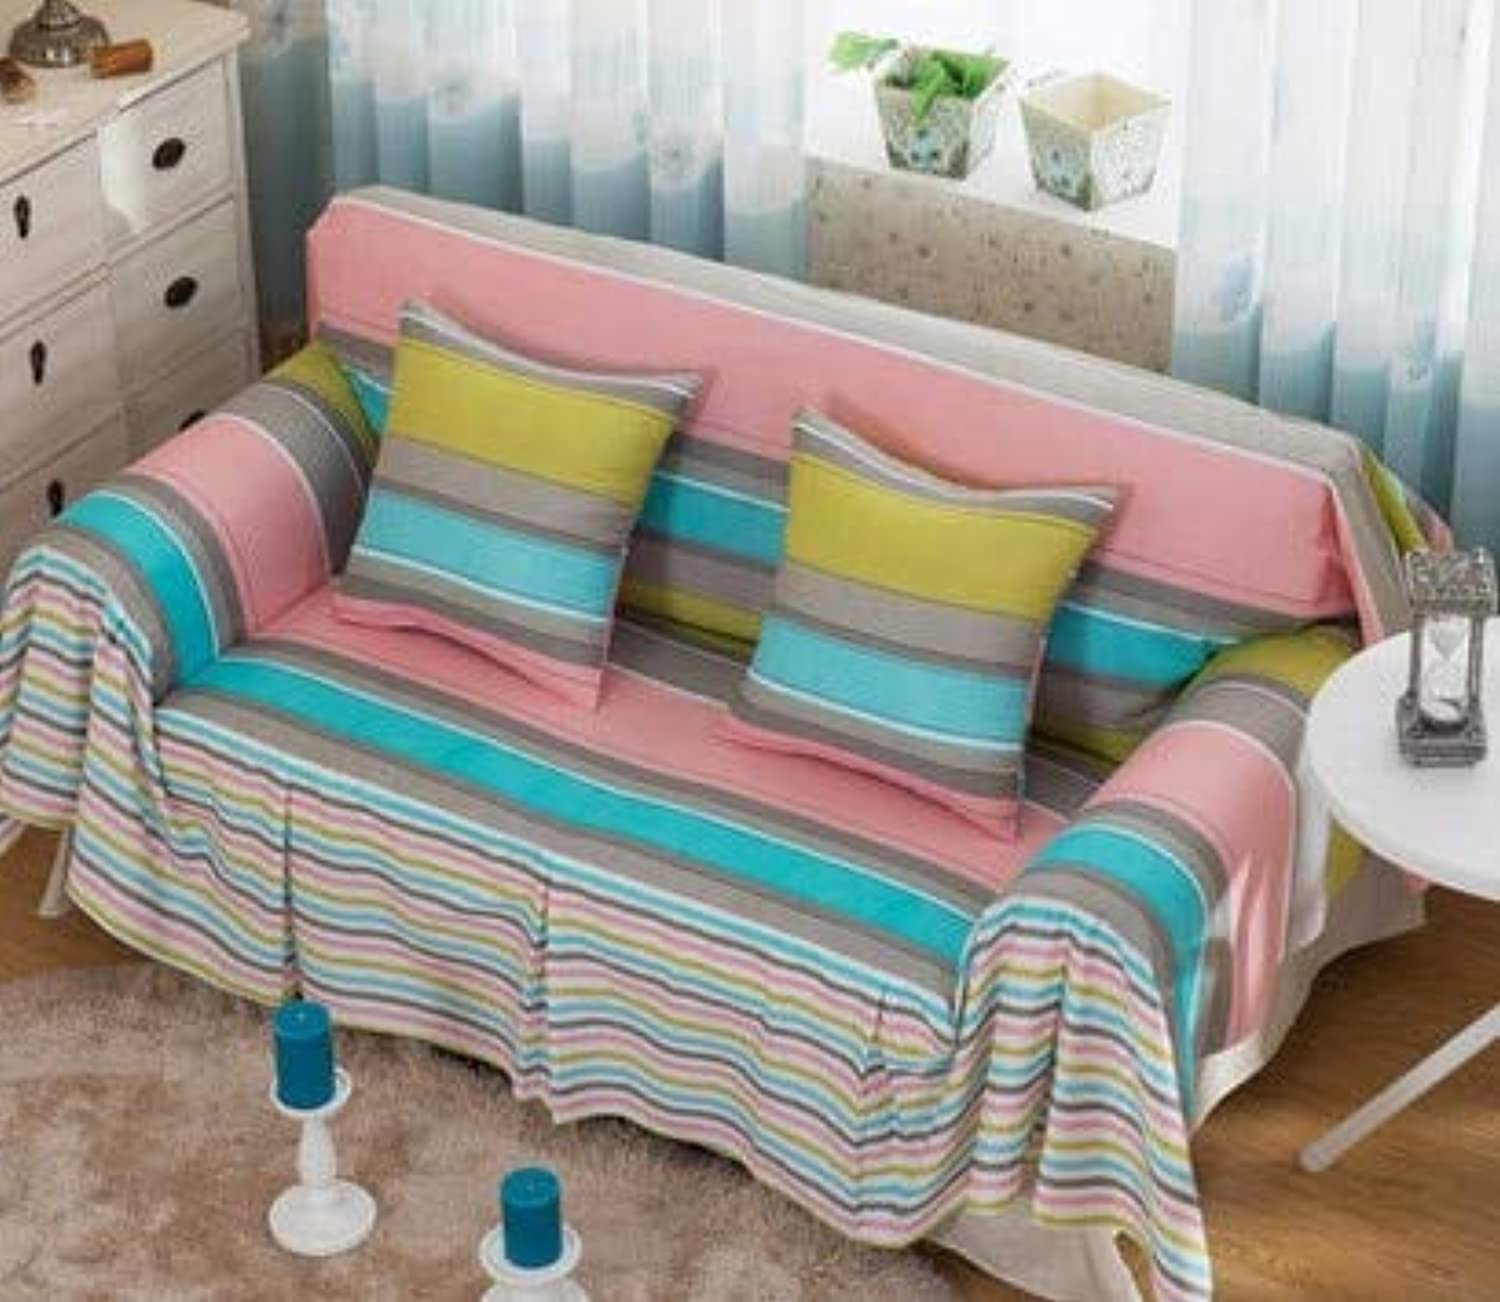 Zoomy far Single Two Three Four-Seater Sofa Cotton Slip-Resistant Sofa Slipcover Couch Cover for Lig Room Sofa Towel Home Decor   01, Single Seater Sofa